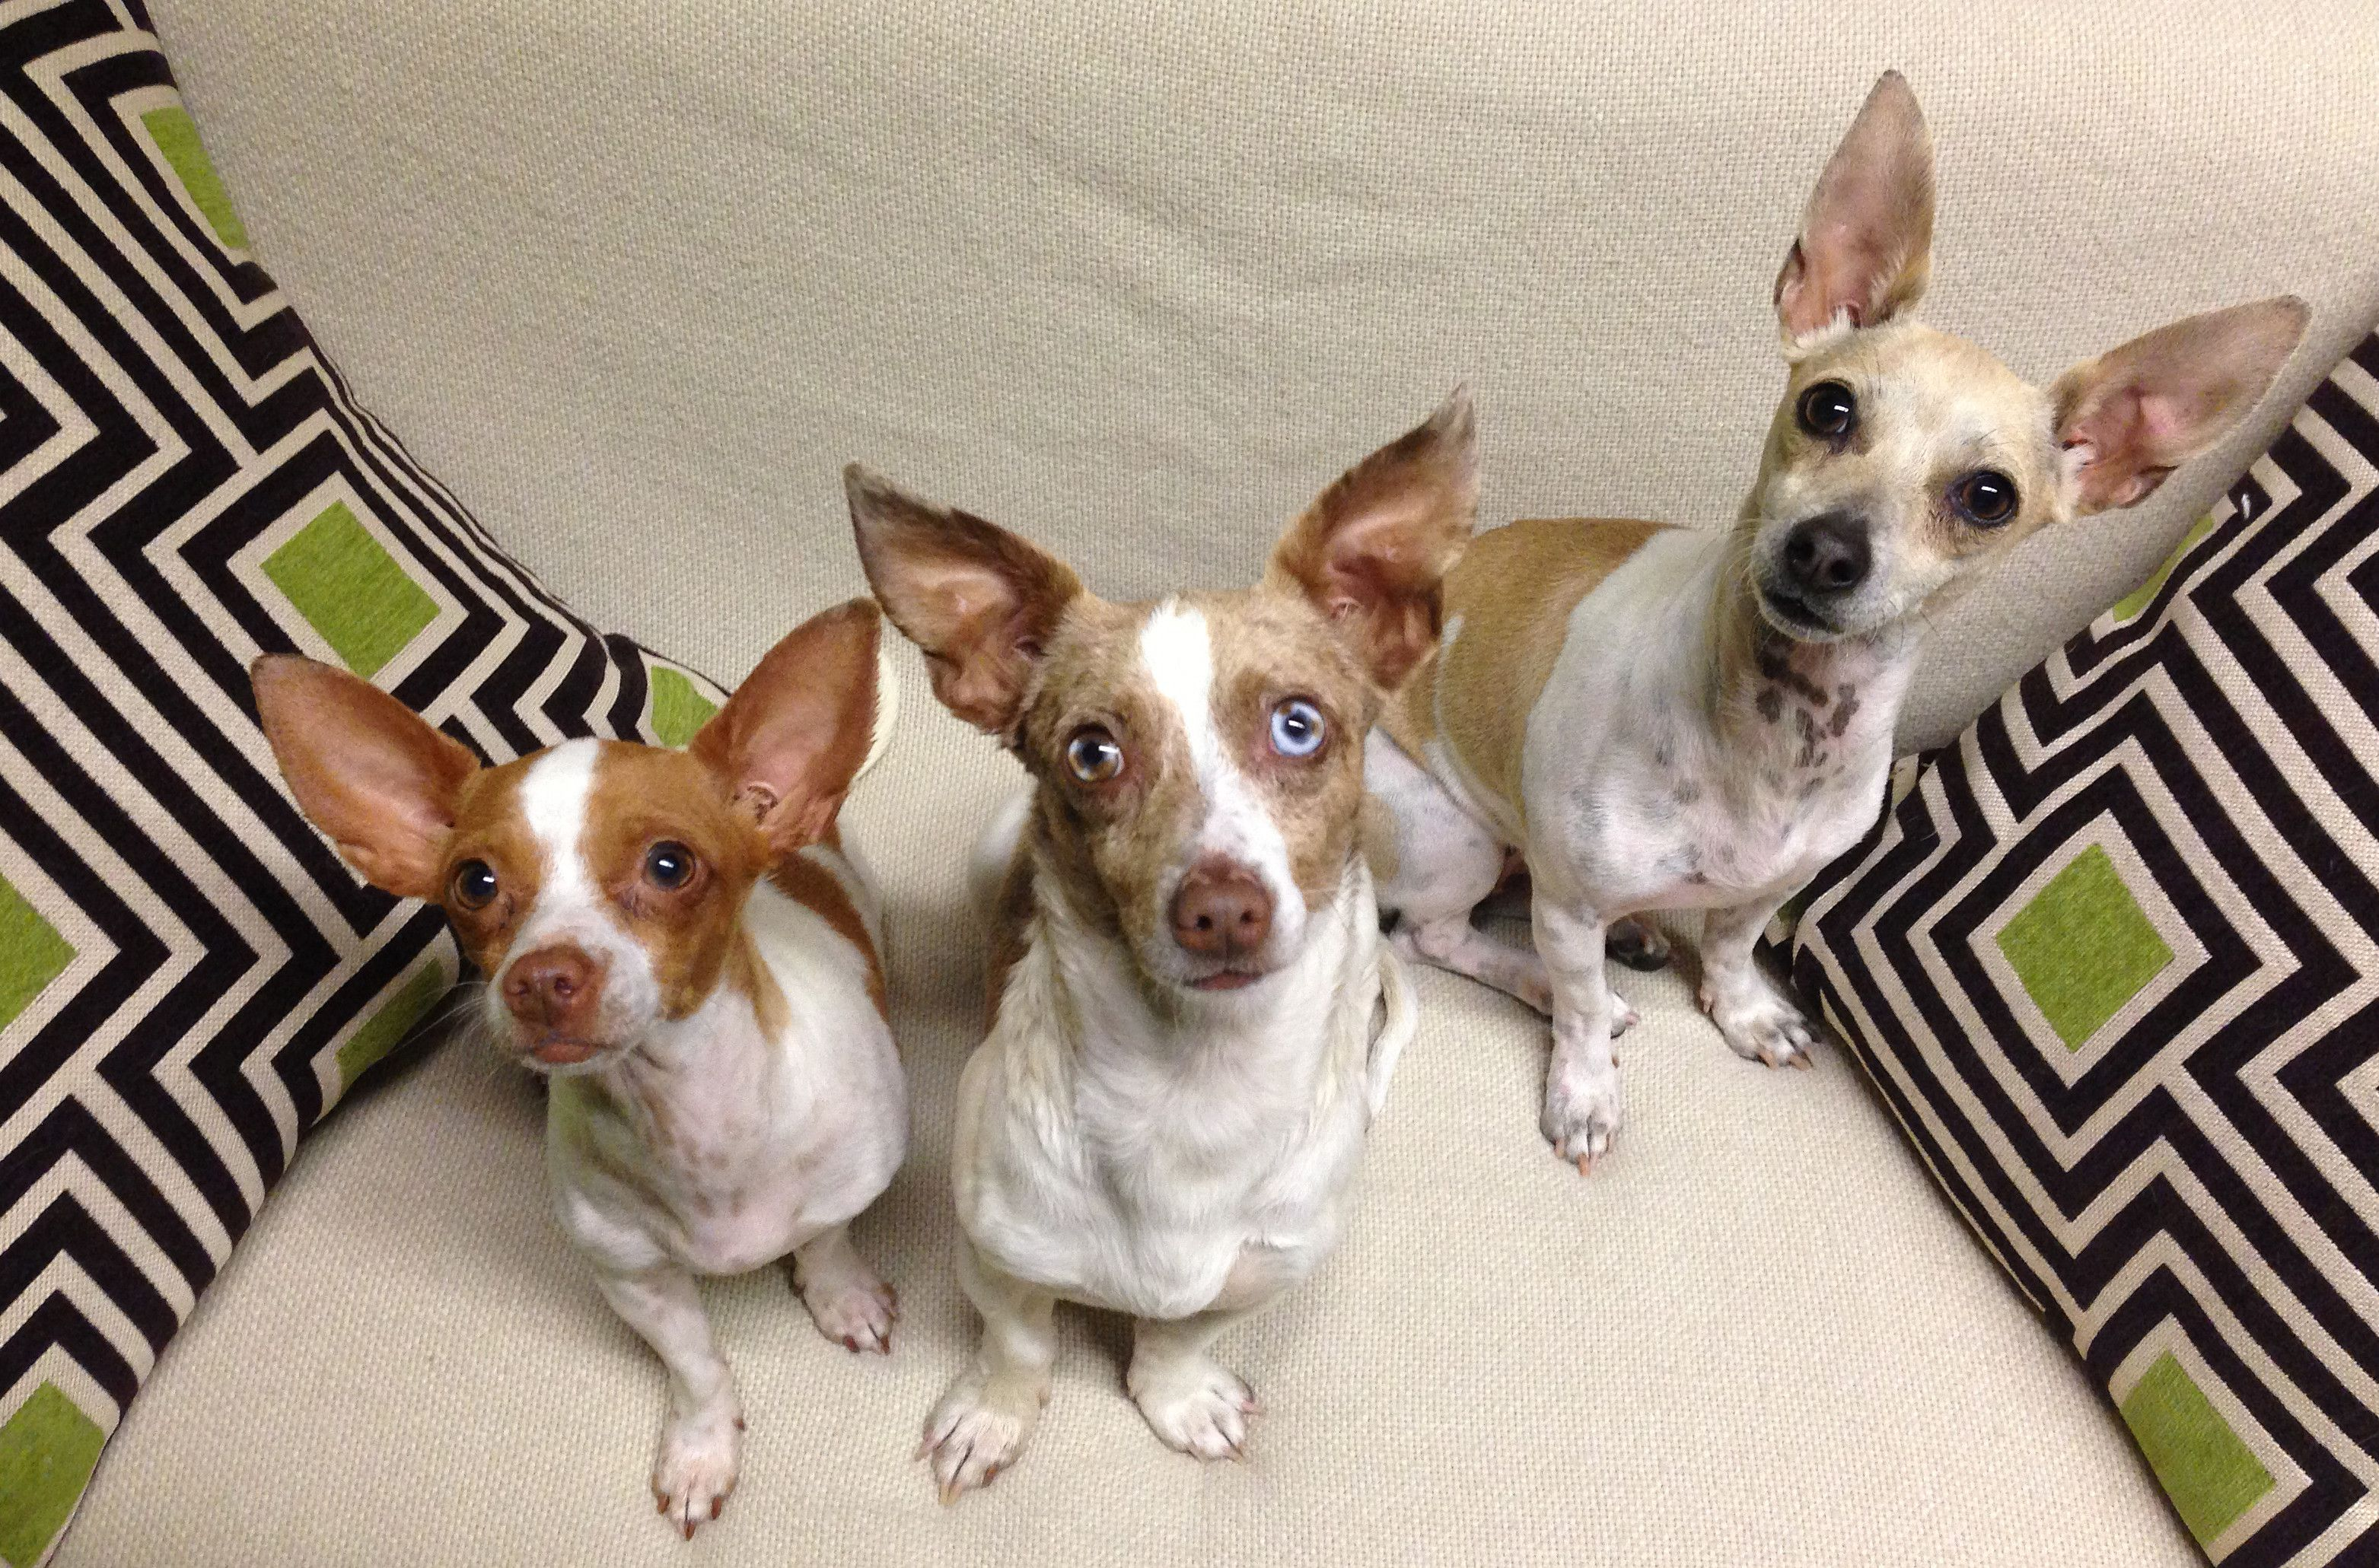 WATCH Abandoned Chihuahuas Rescued In Inspiring Video